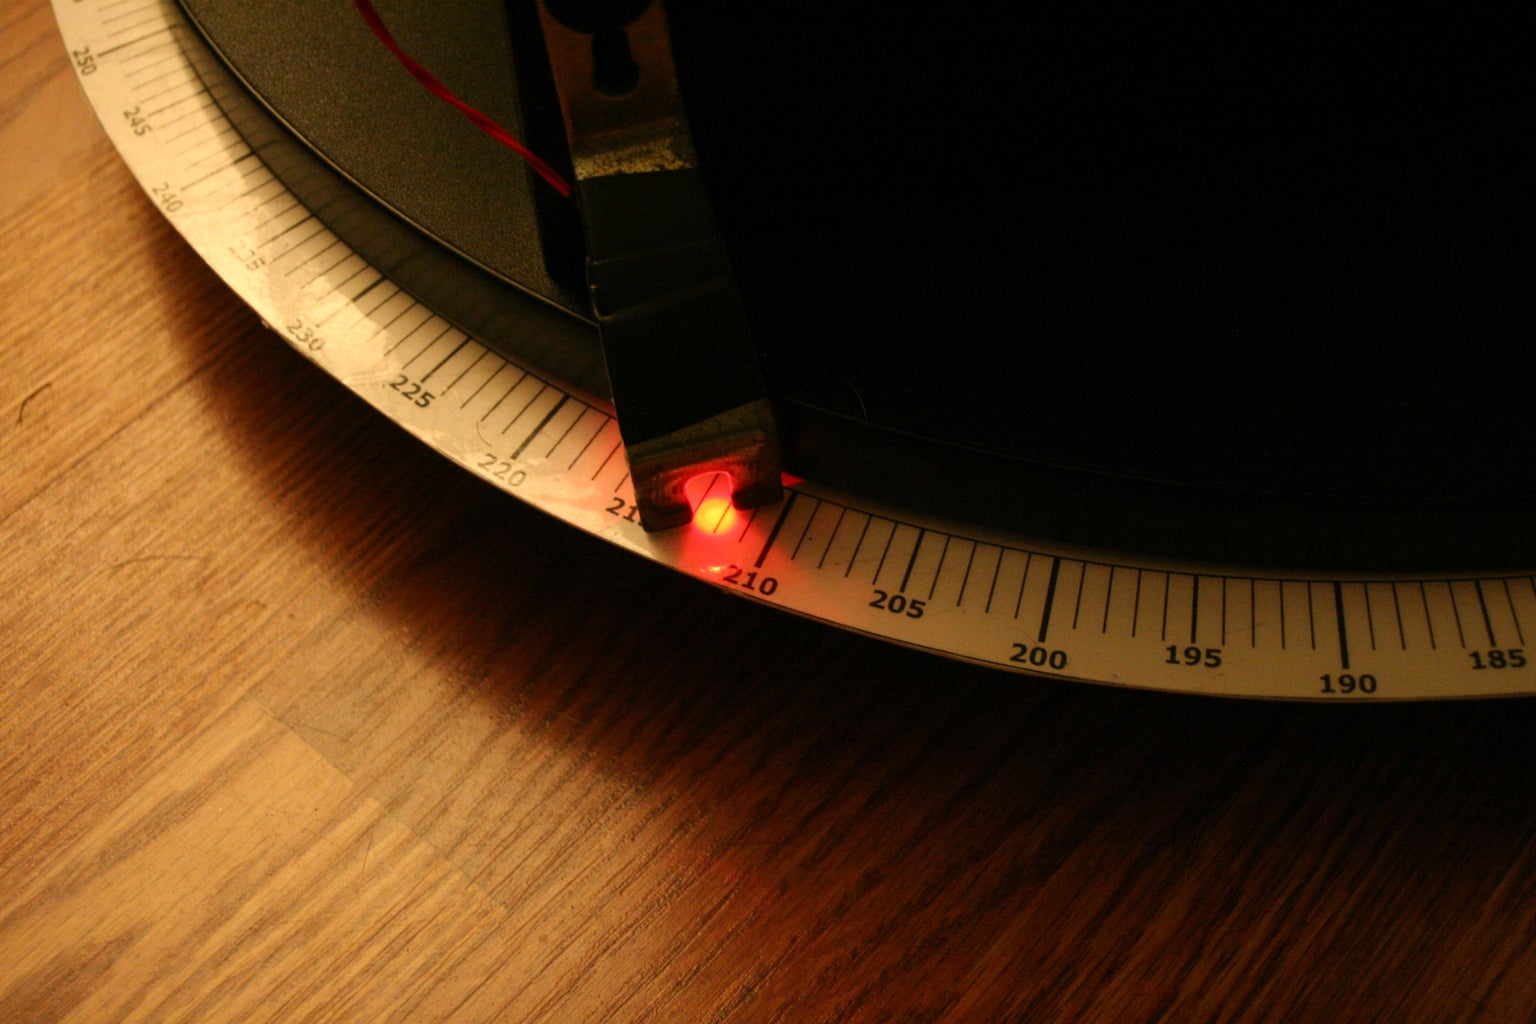 Physical Prototype - Part 2: Red LED Pointer.